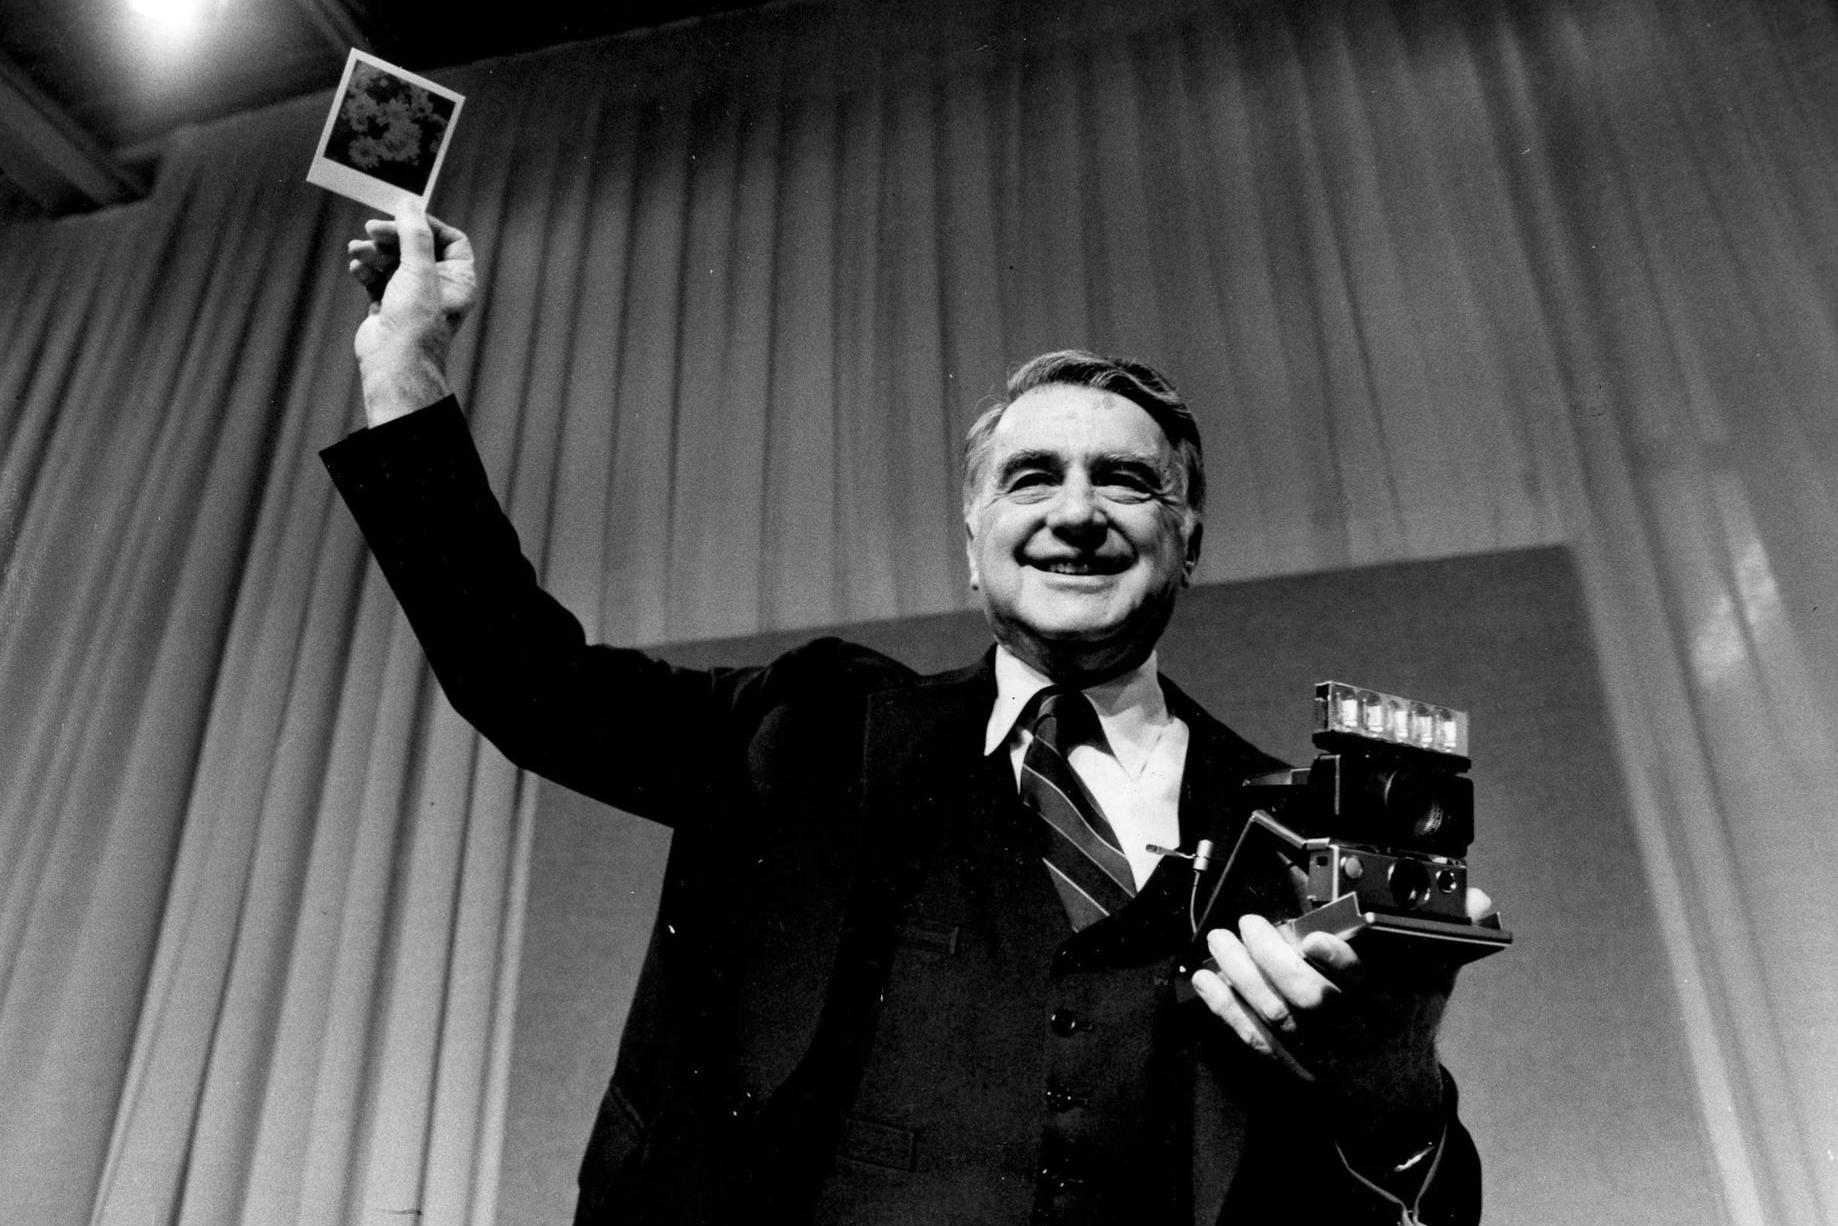 Edwin Land at the release of the cult-classic SX-70, one of the marvels of Polaroid engineering.